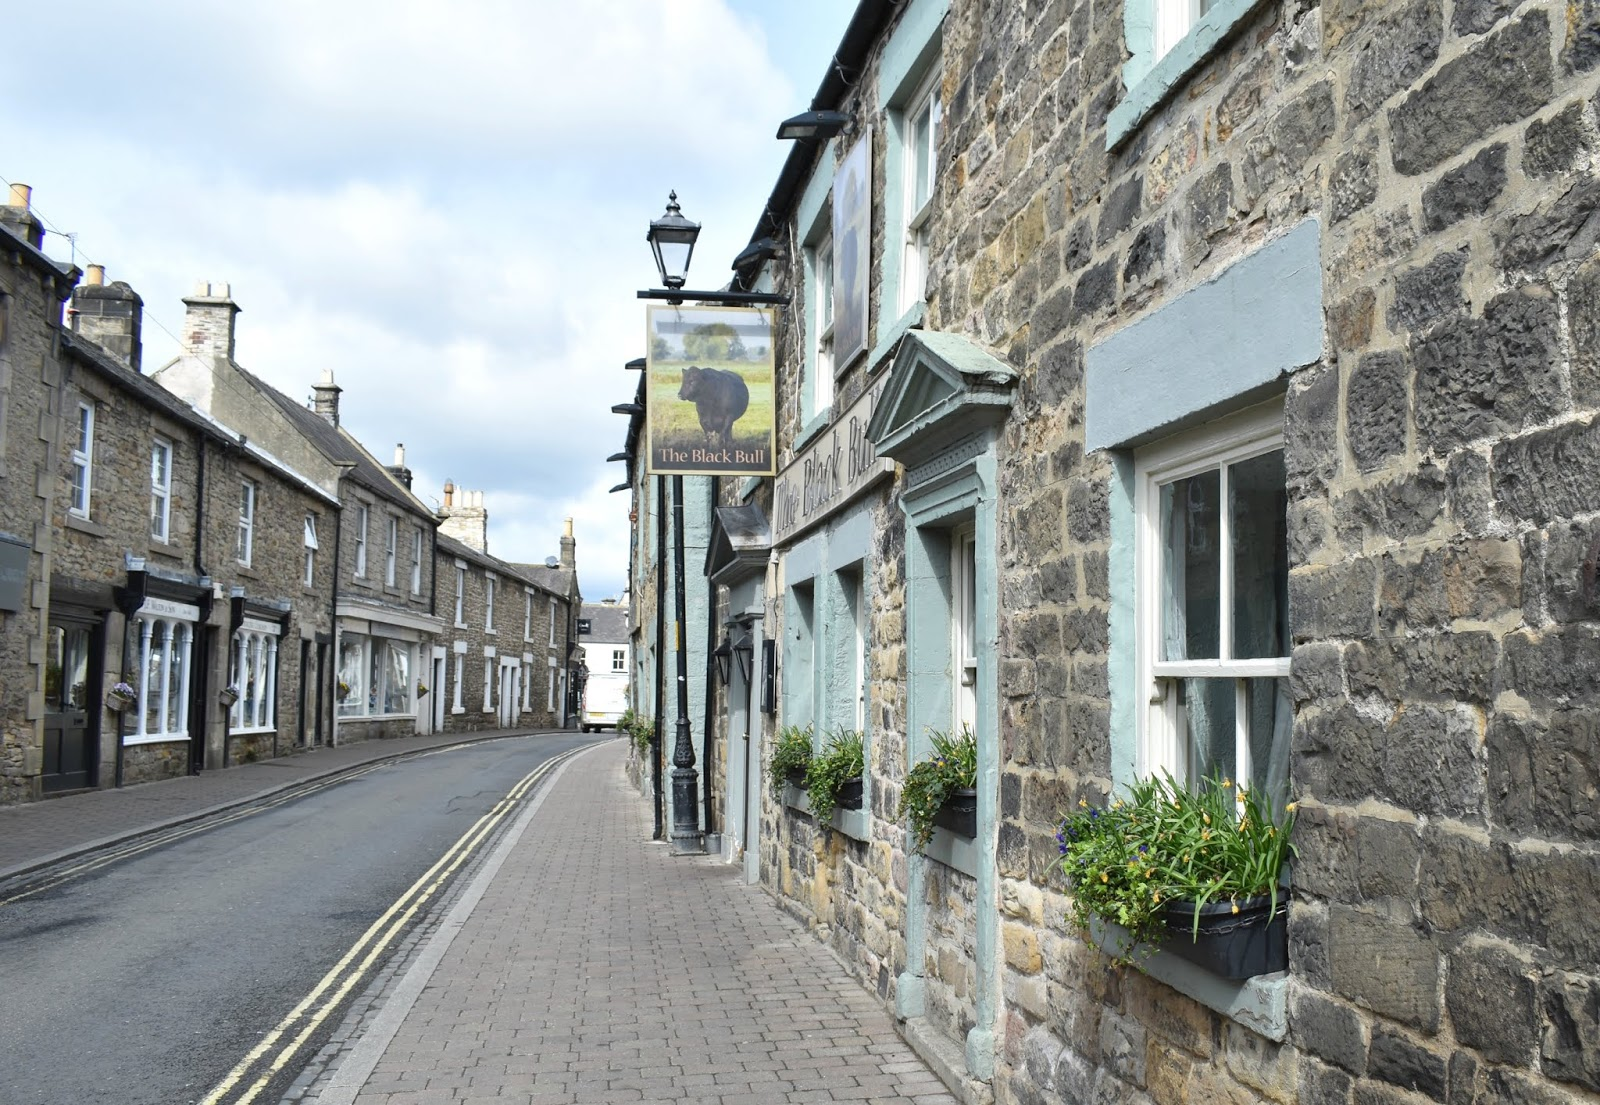 Day Trip to Corbridge, Northumberland